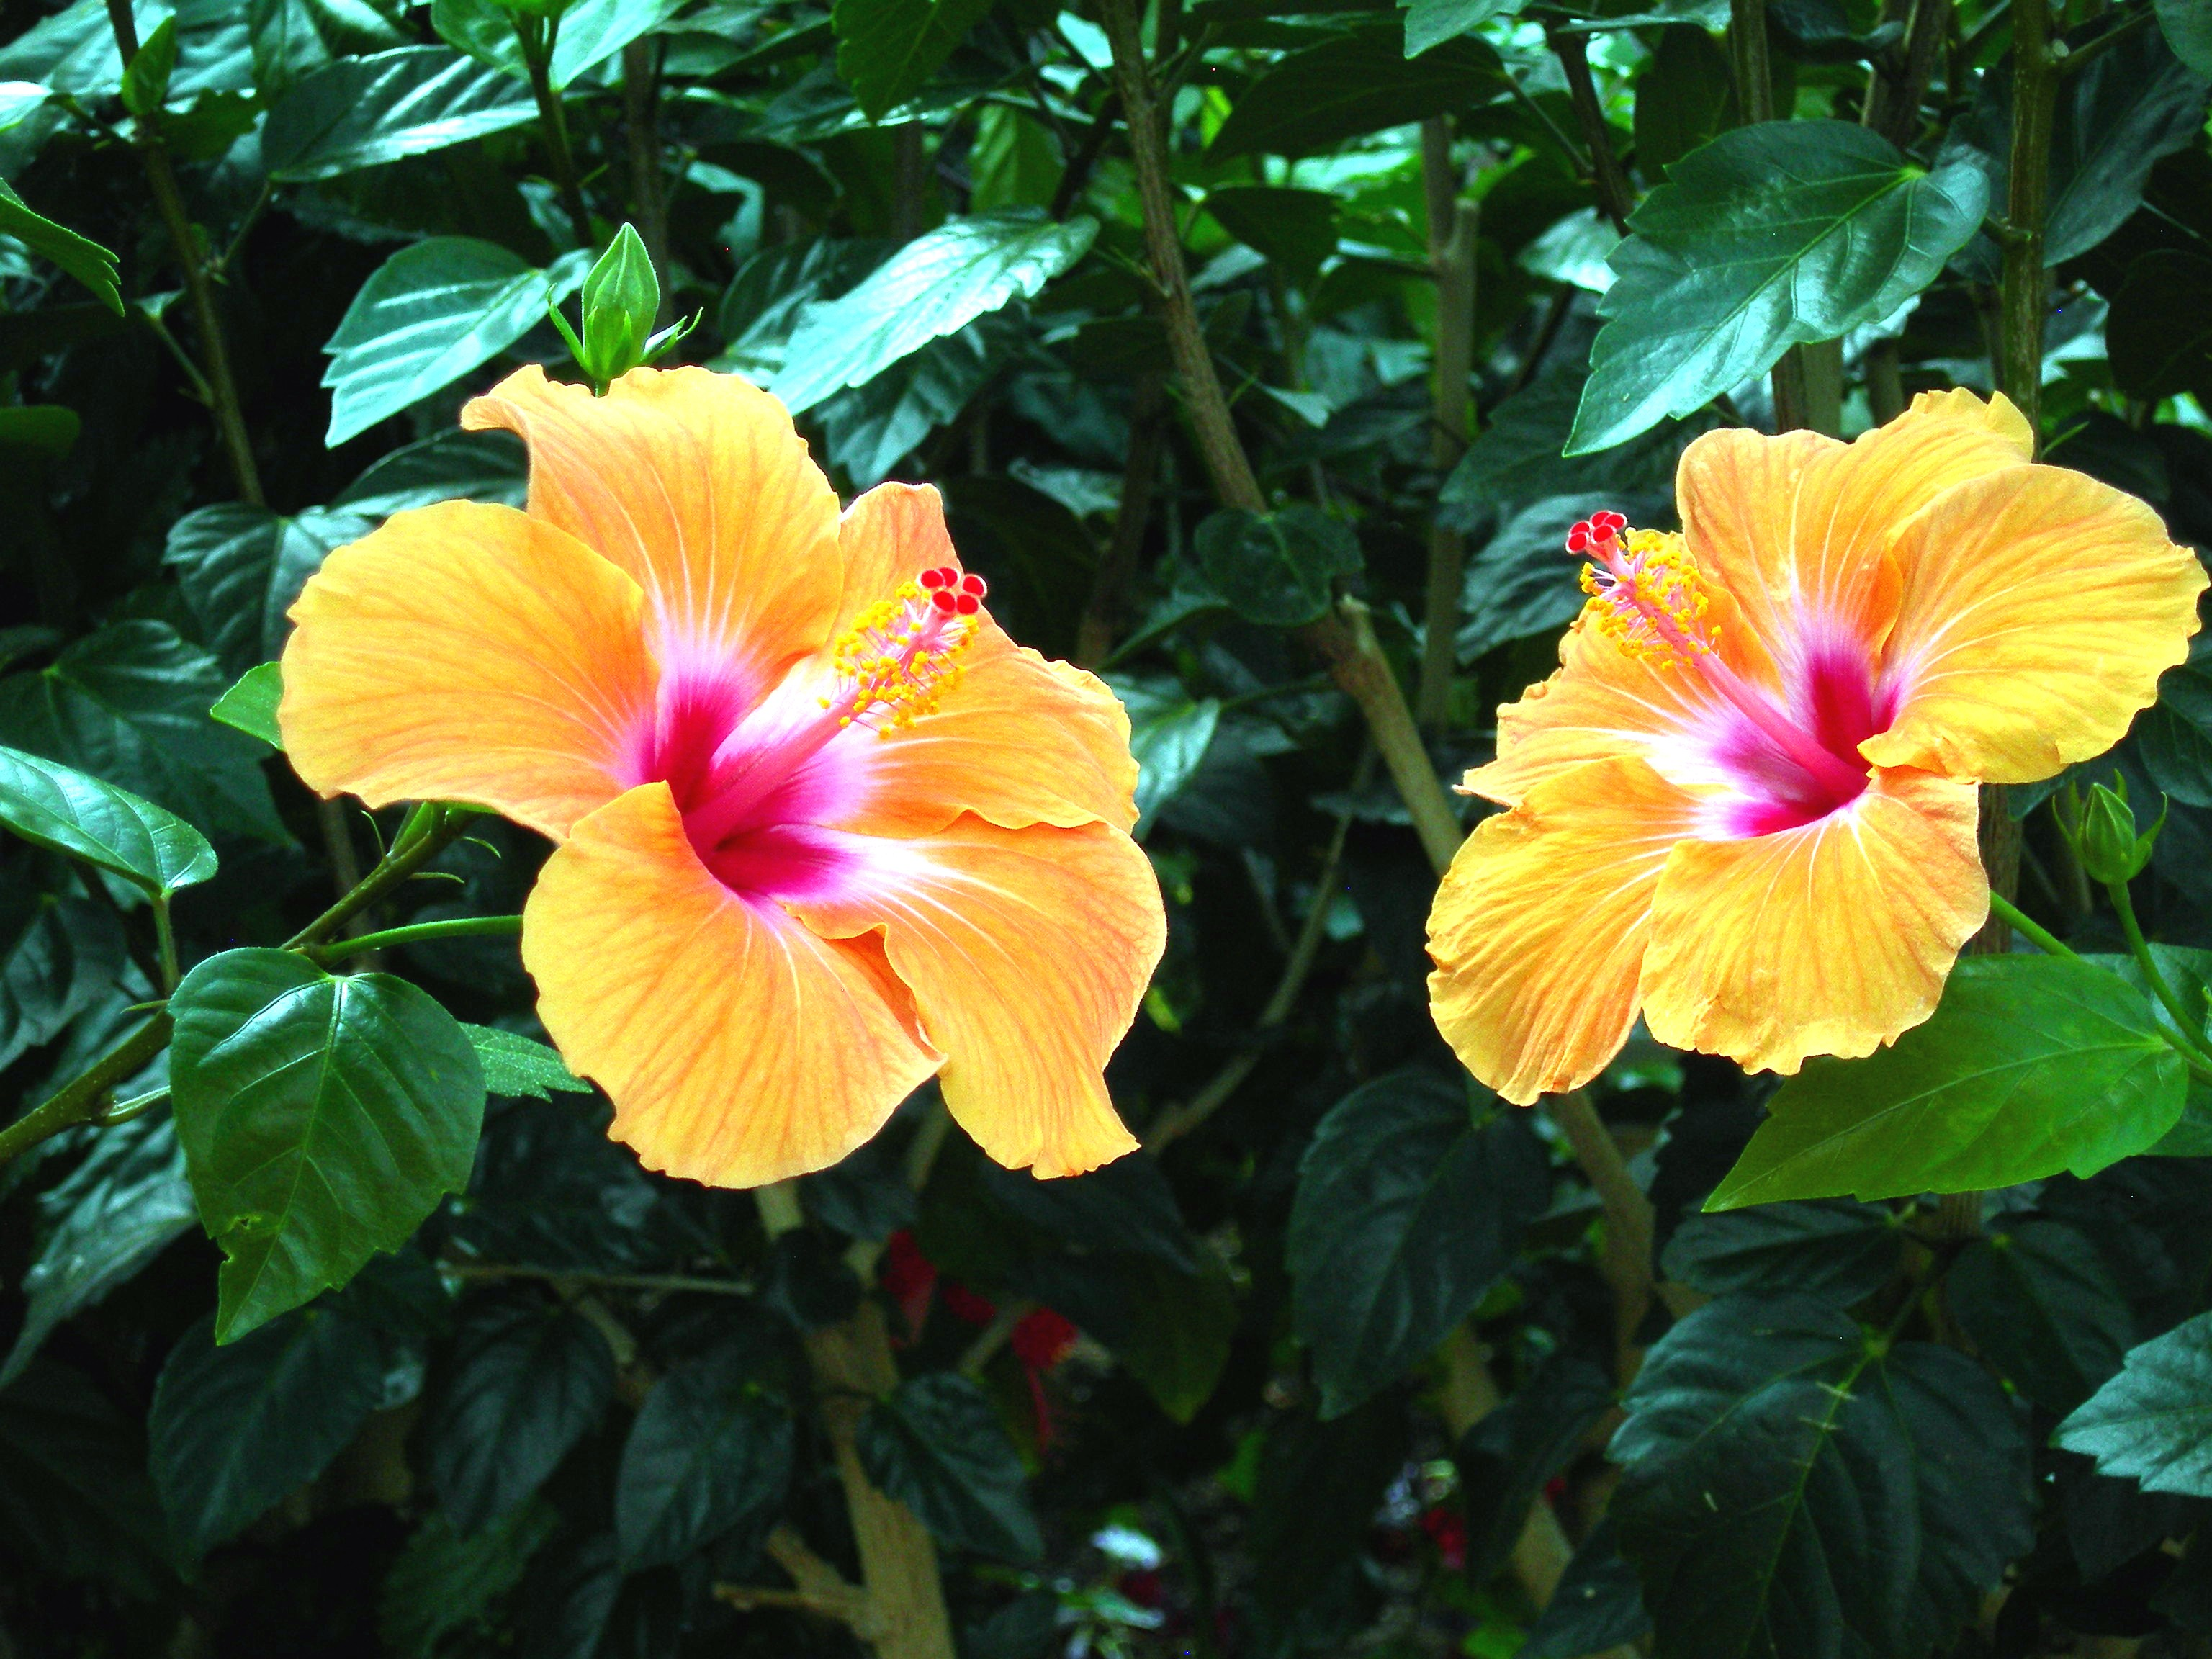 Living wittily for the beauty and fun of the earth thanks be these are amongst the most beautiful flowers in the world way ahead of orchids for me though the flower only lasts a day or two izmirmasajfo